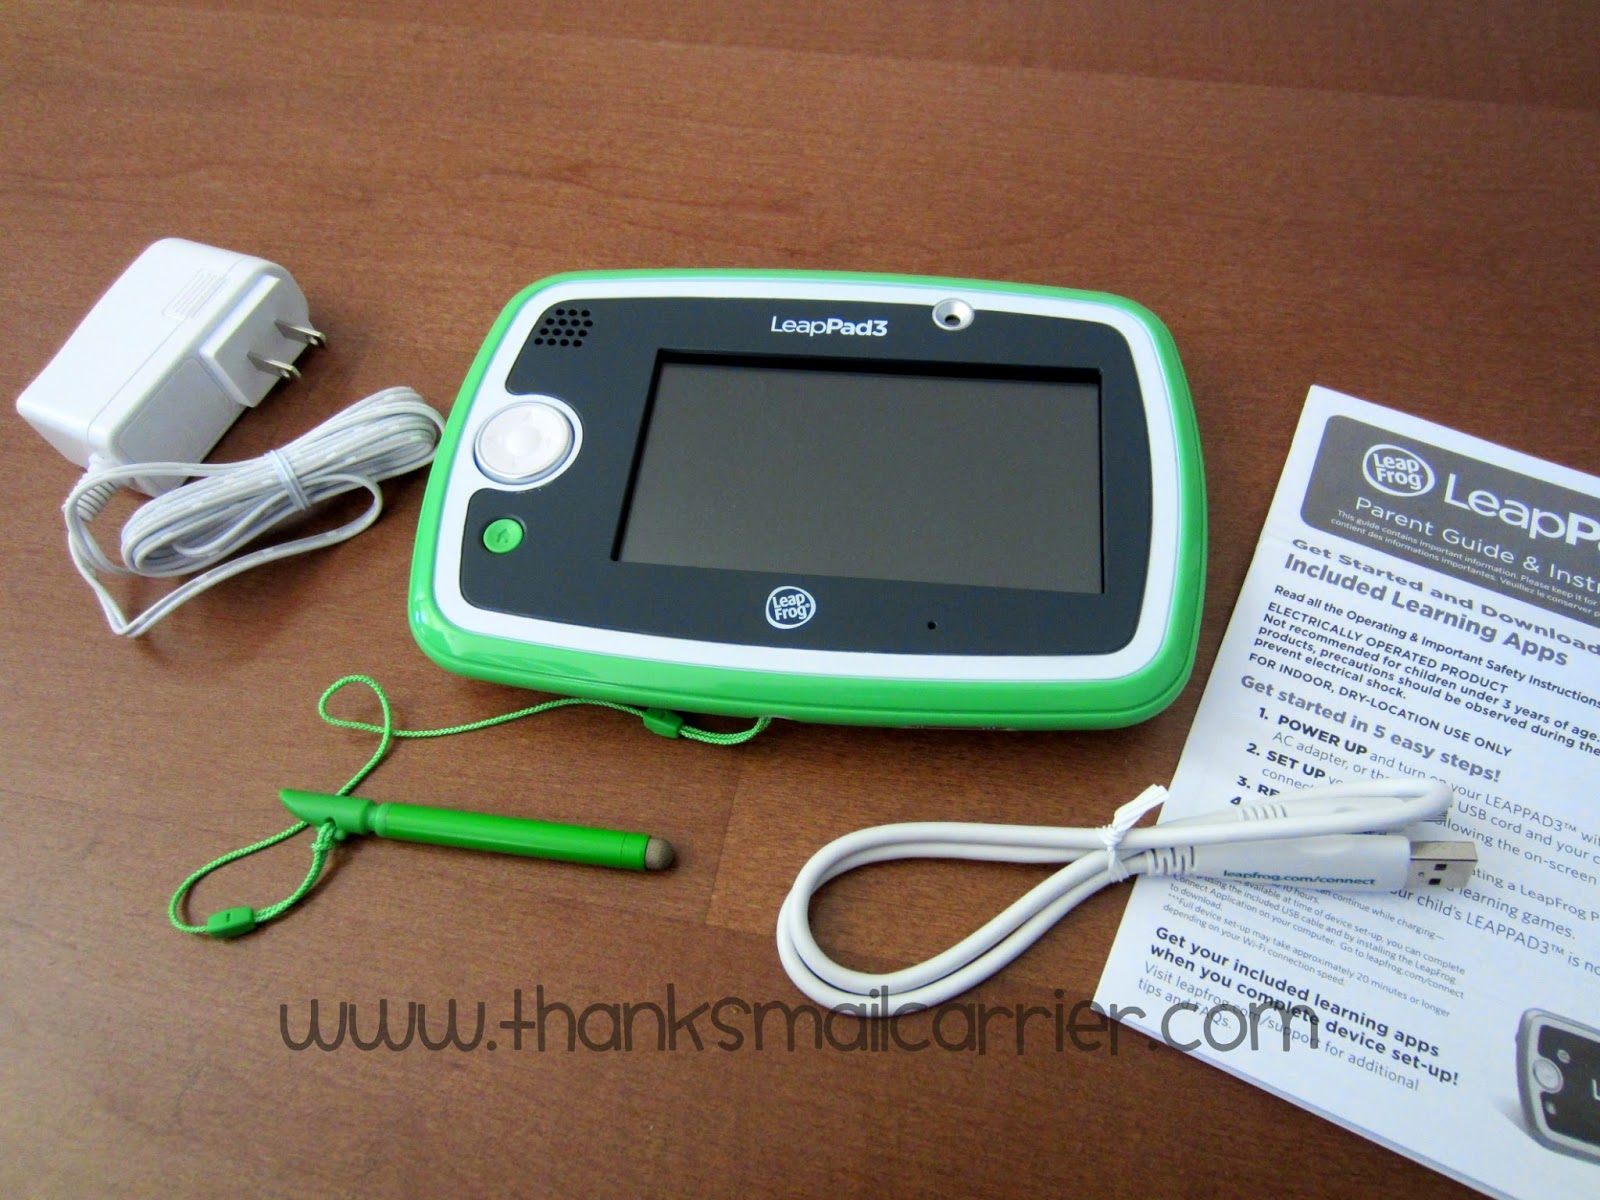 LeapFrog LeapPad3 review